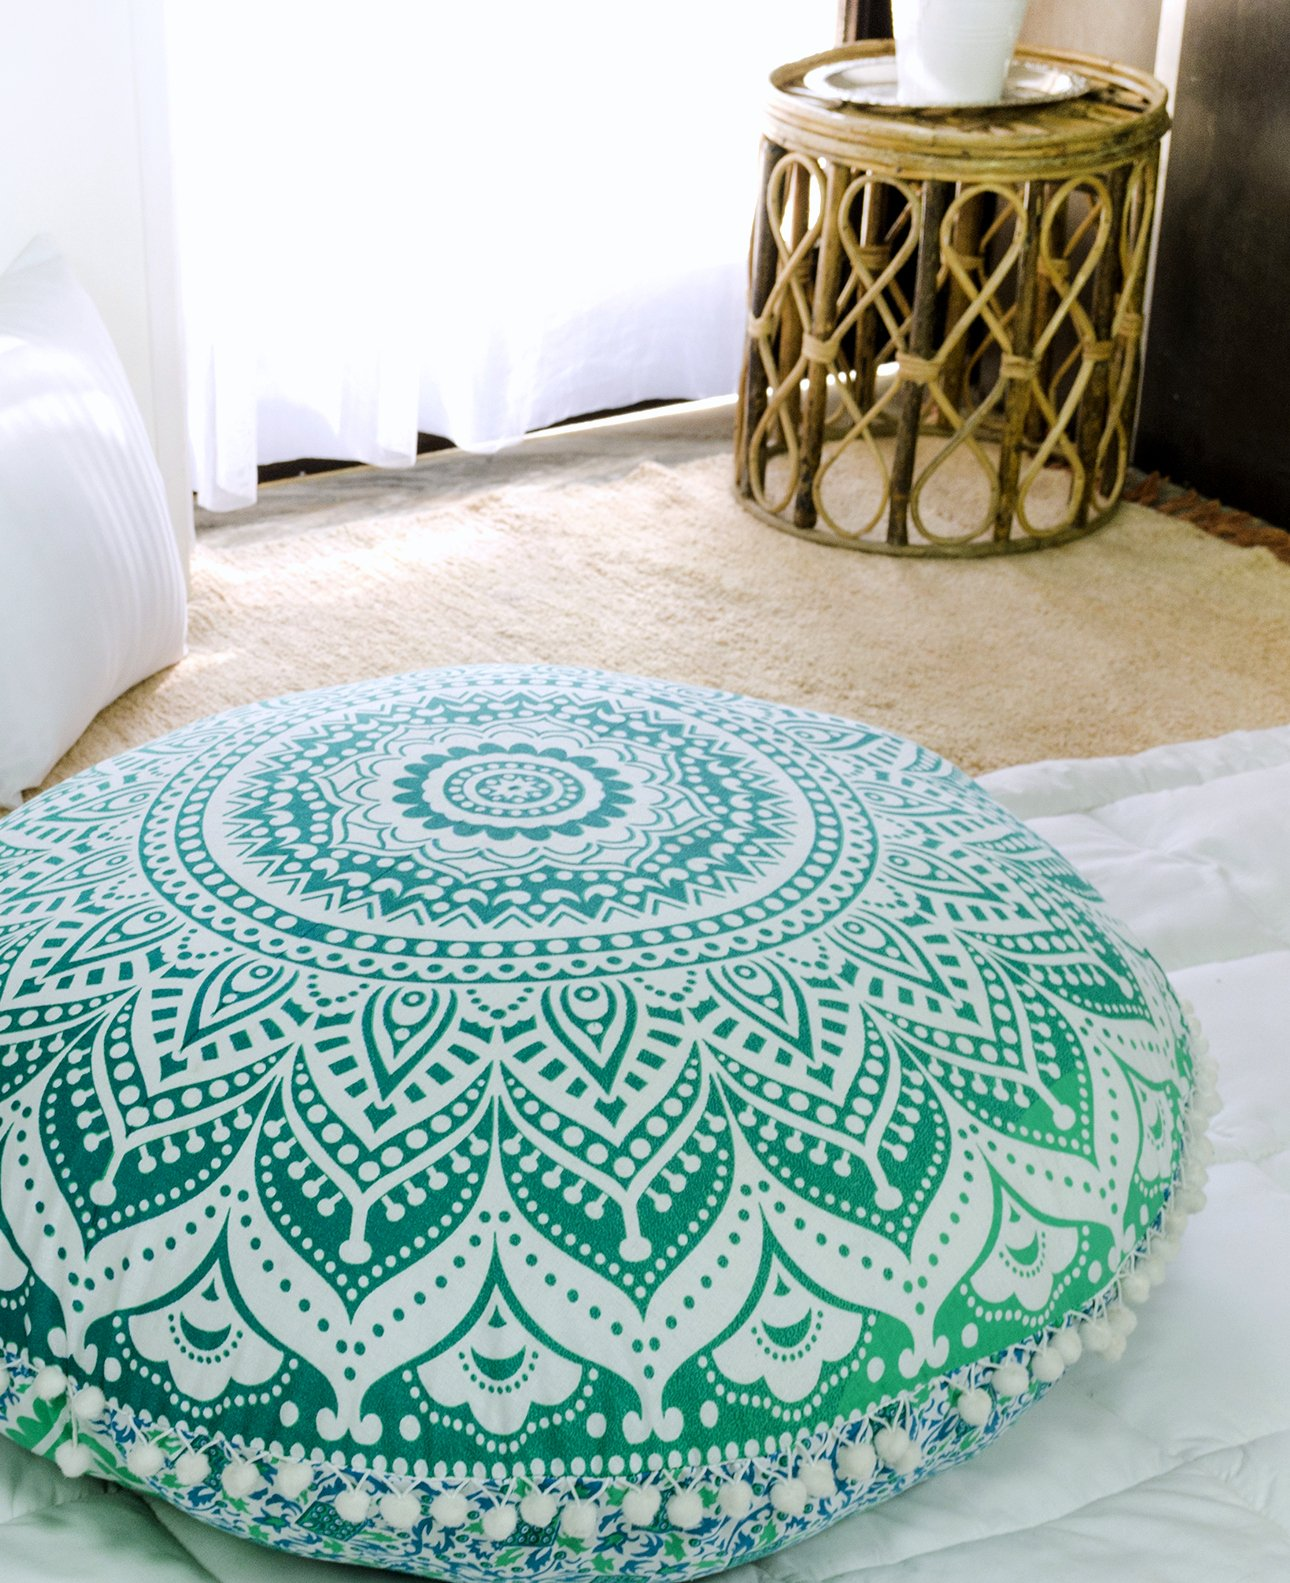 Popular Handicrafts Large Ombre Mandala Round Hippie Floor Pillow - Cushion - Pouf Cover Bohemian Yoga Decor Floor Cushion Case - 32'' Green by Popular Handicrafts (Image #1)